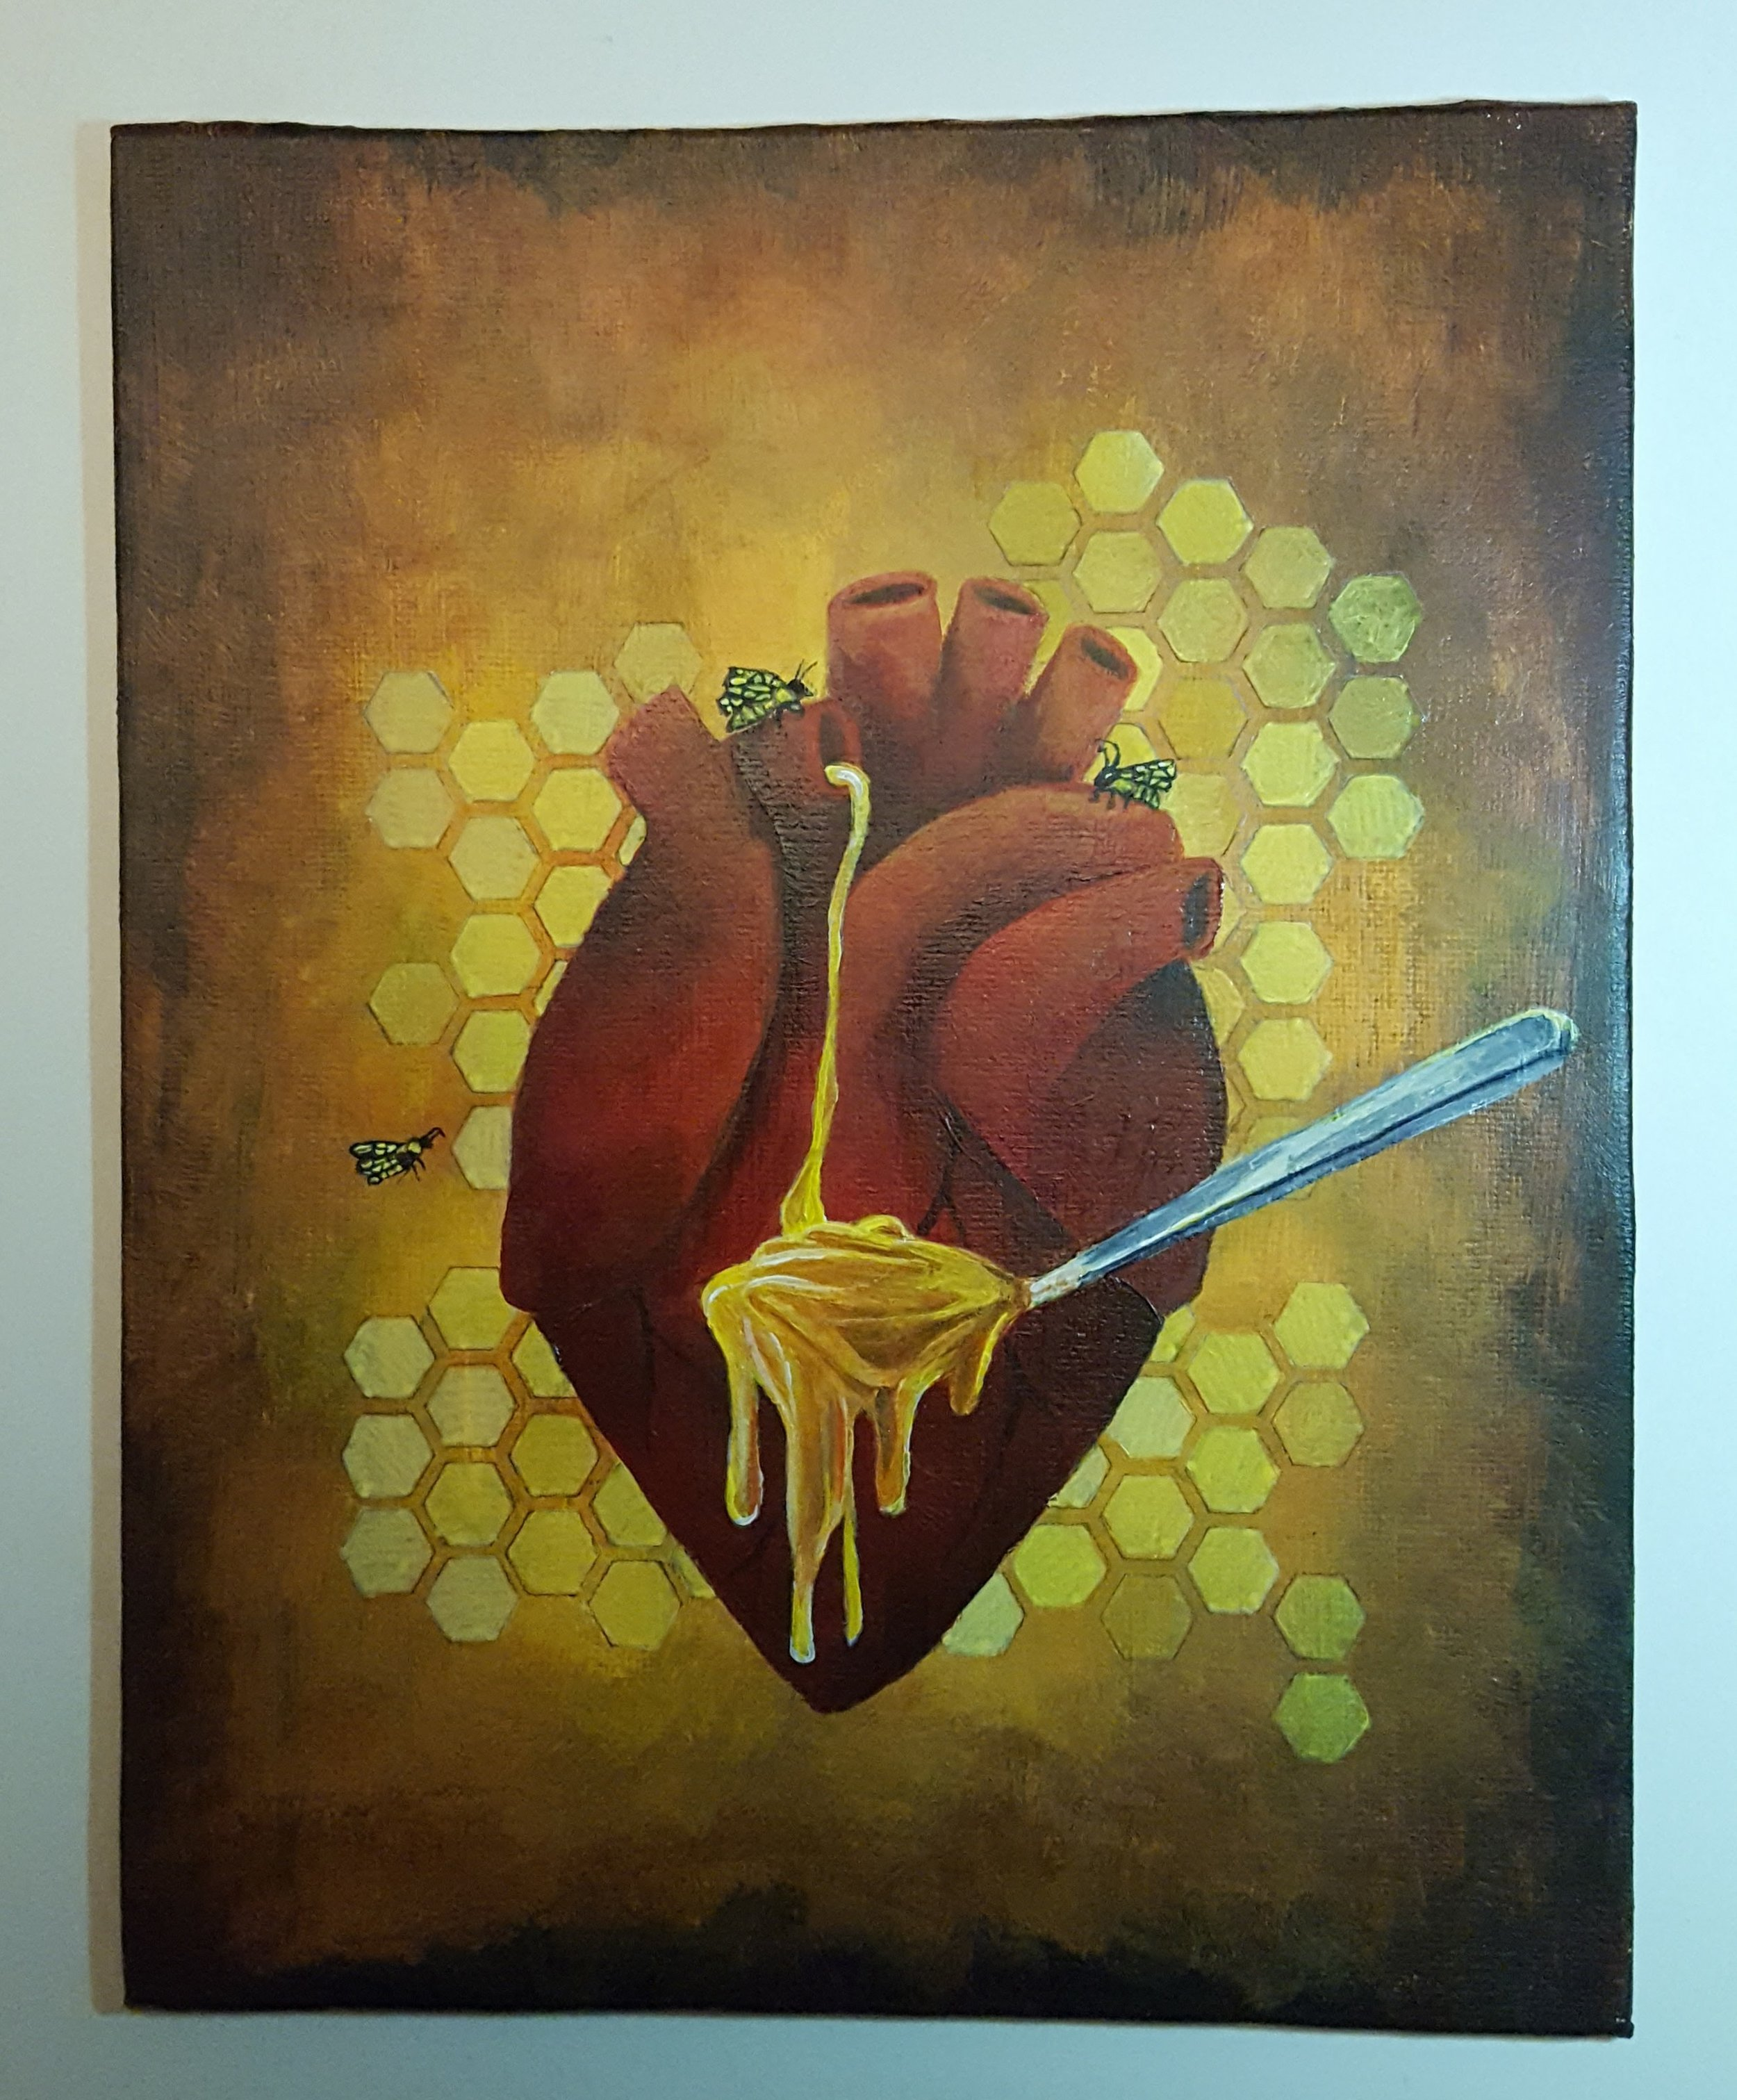 Heart and hive, #2